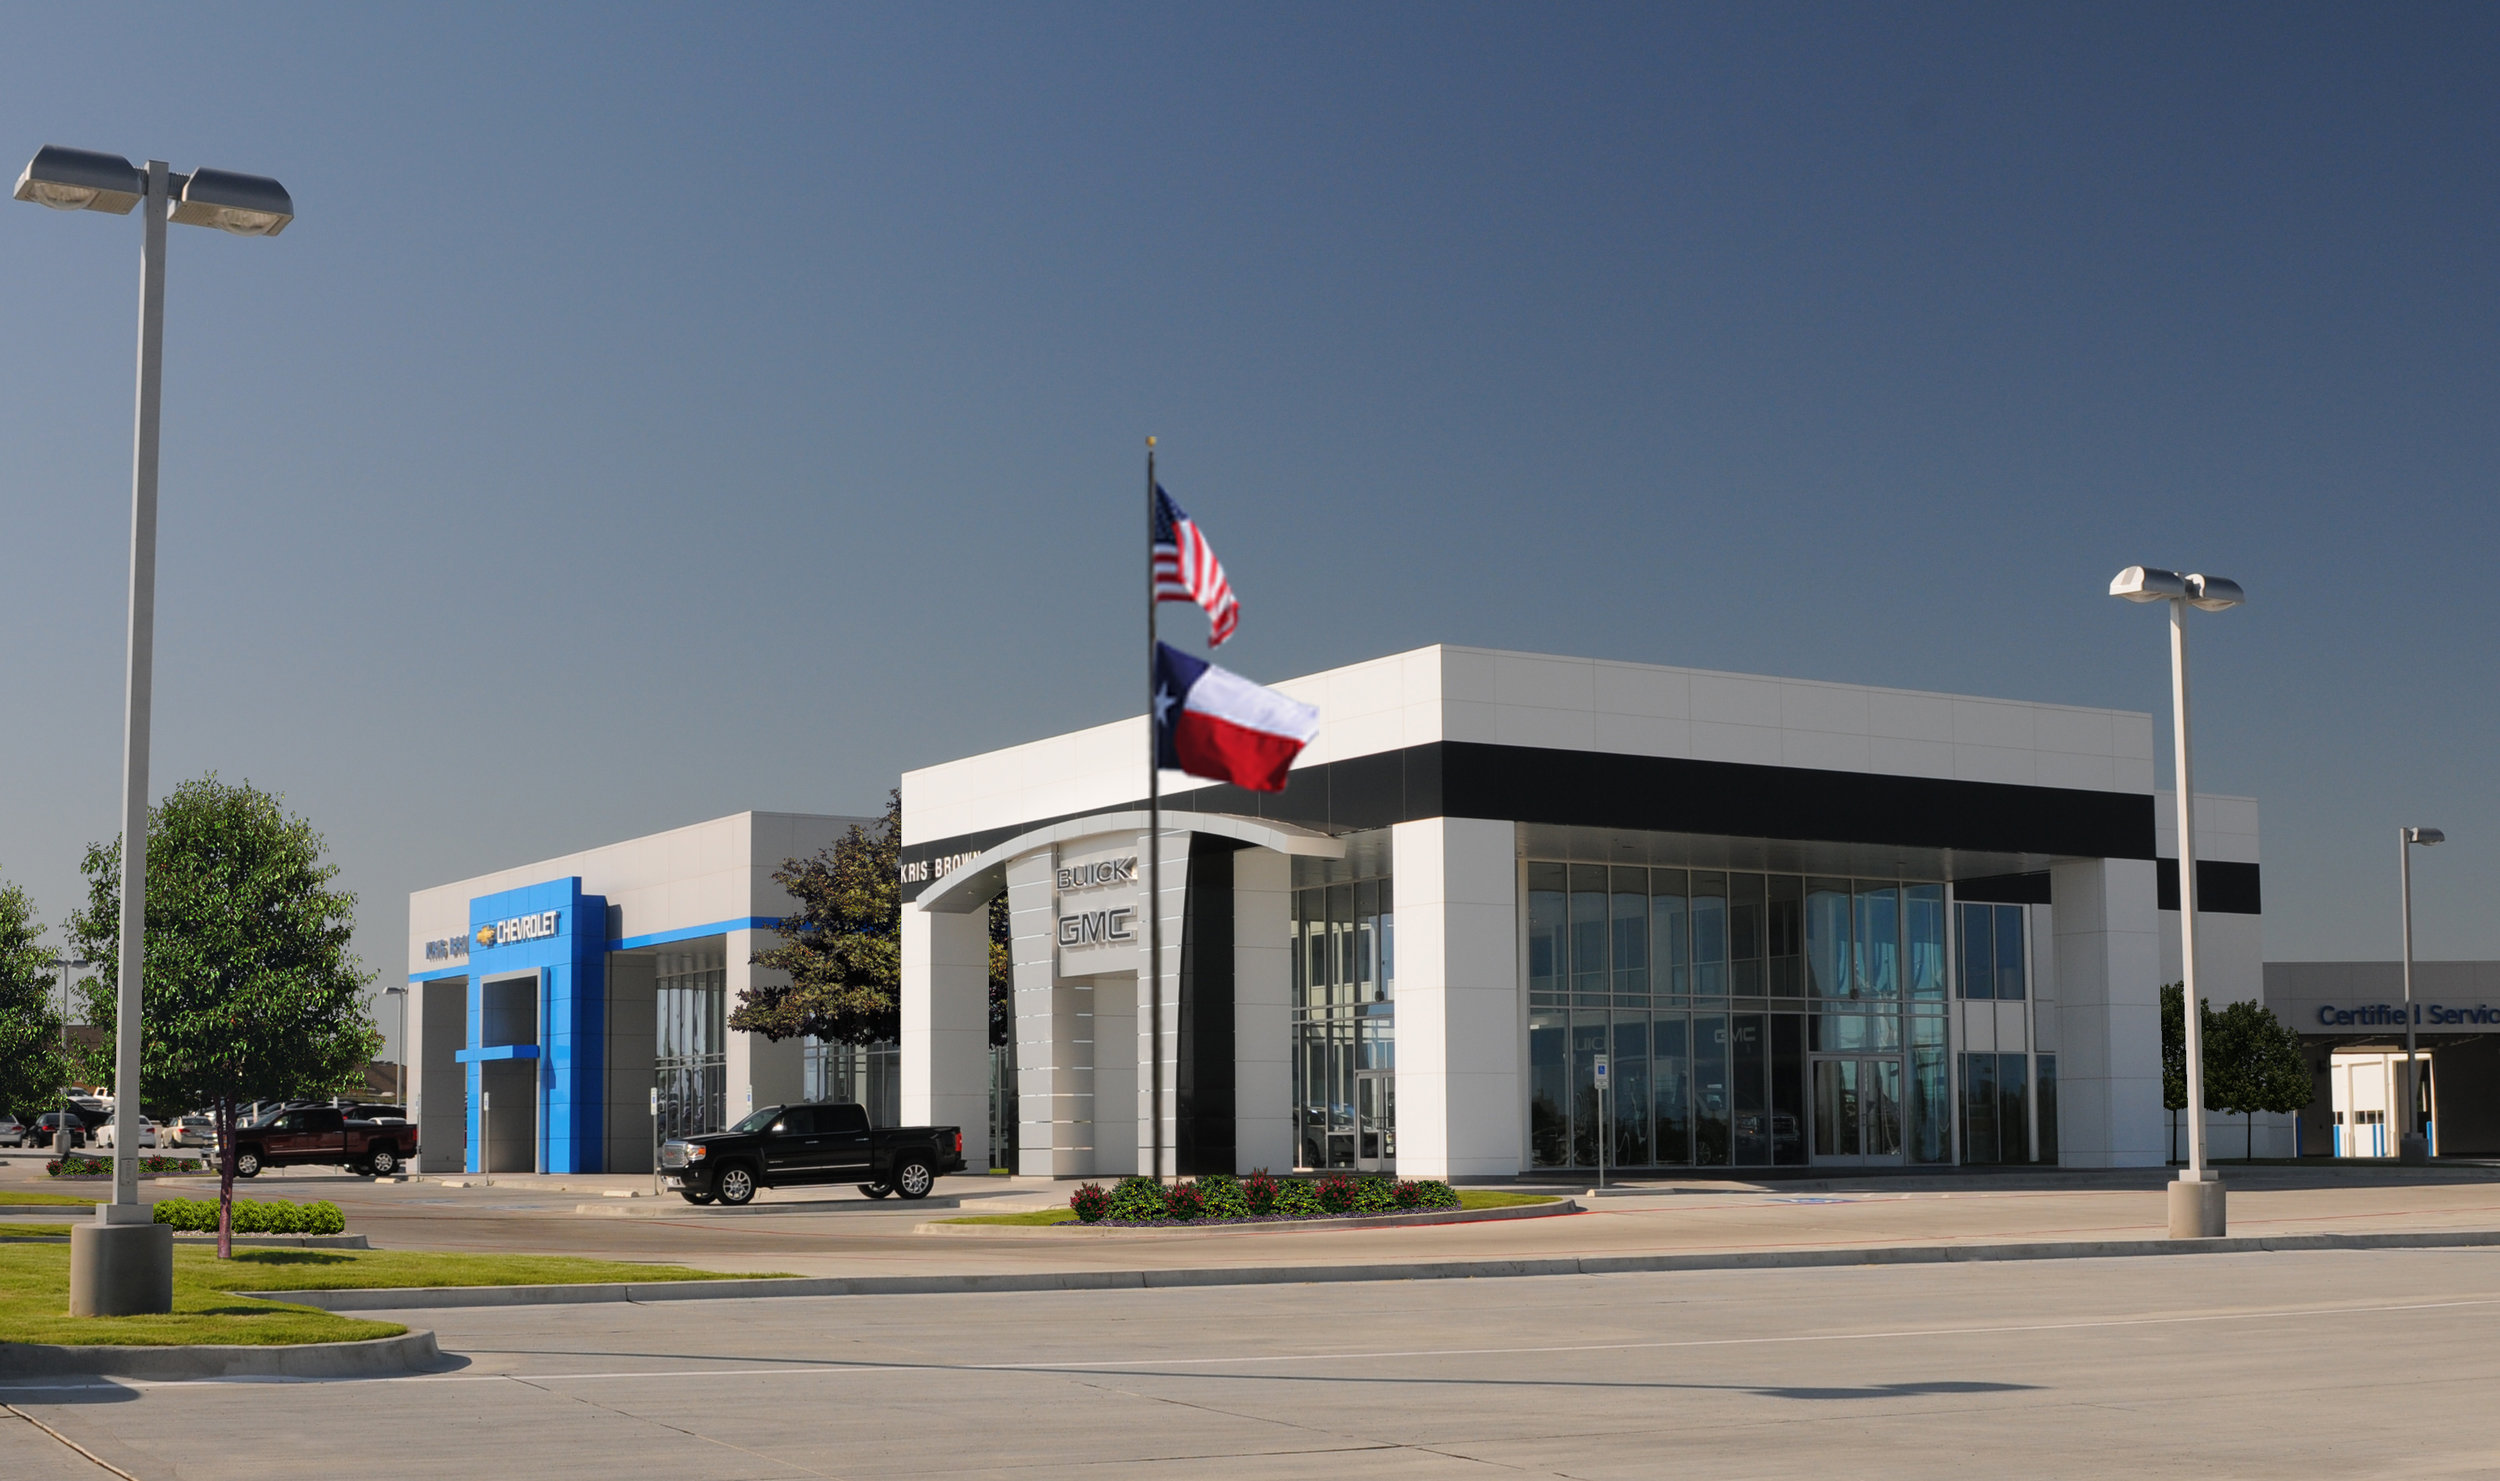 Kris Brown Chevrolet Buick Dodge - Cleburne, Texas